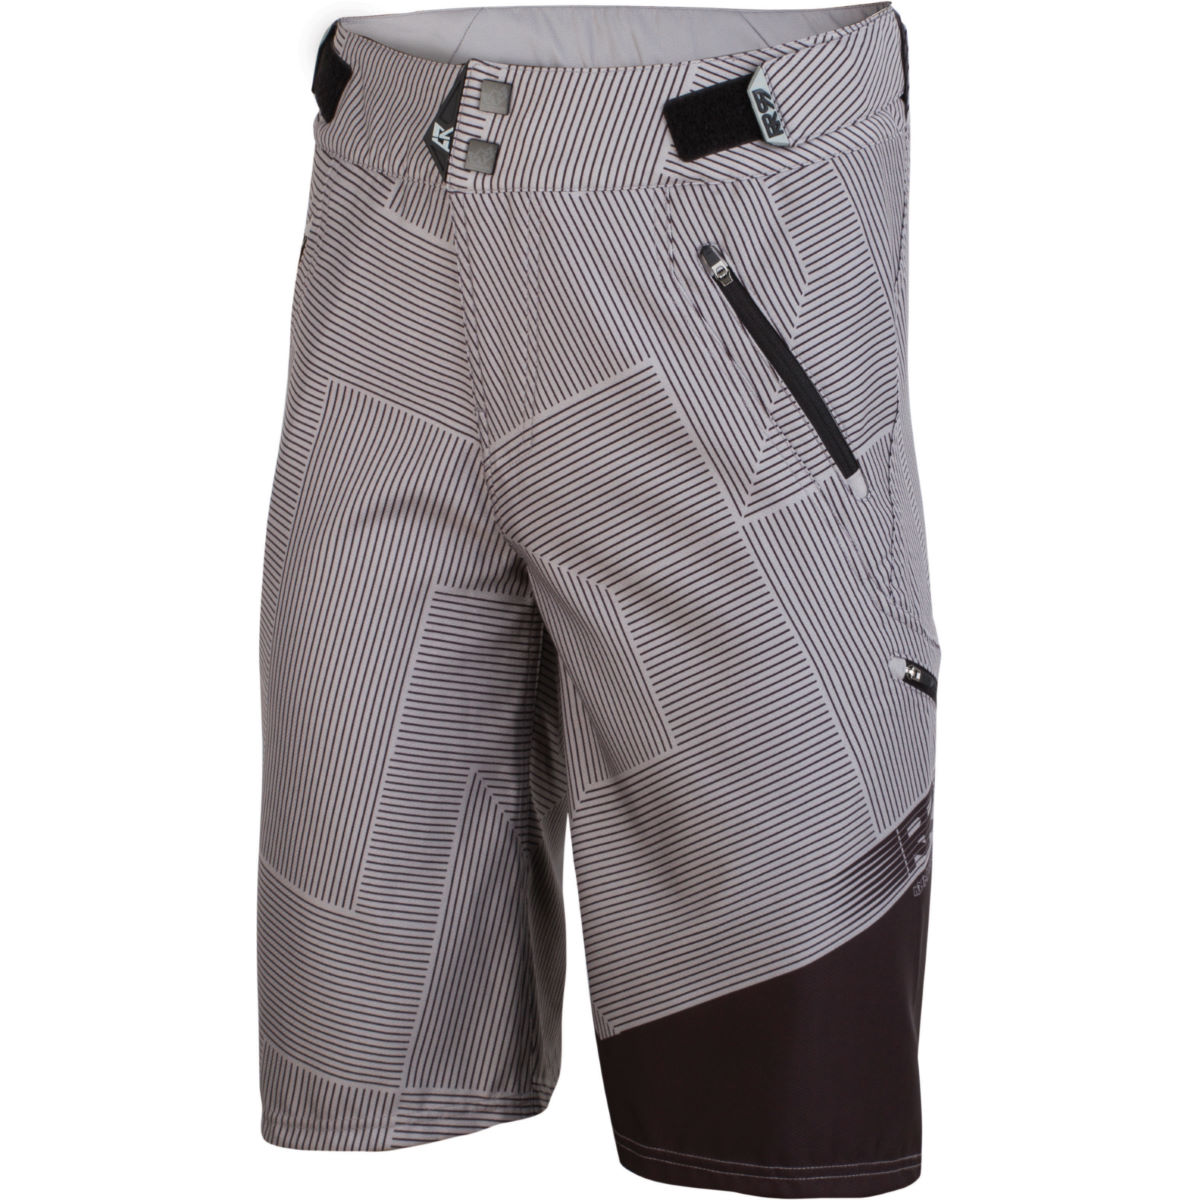 Royal Matrix Shorts - Bermudas